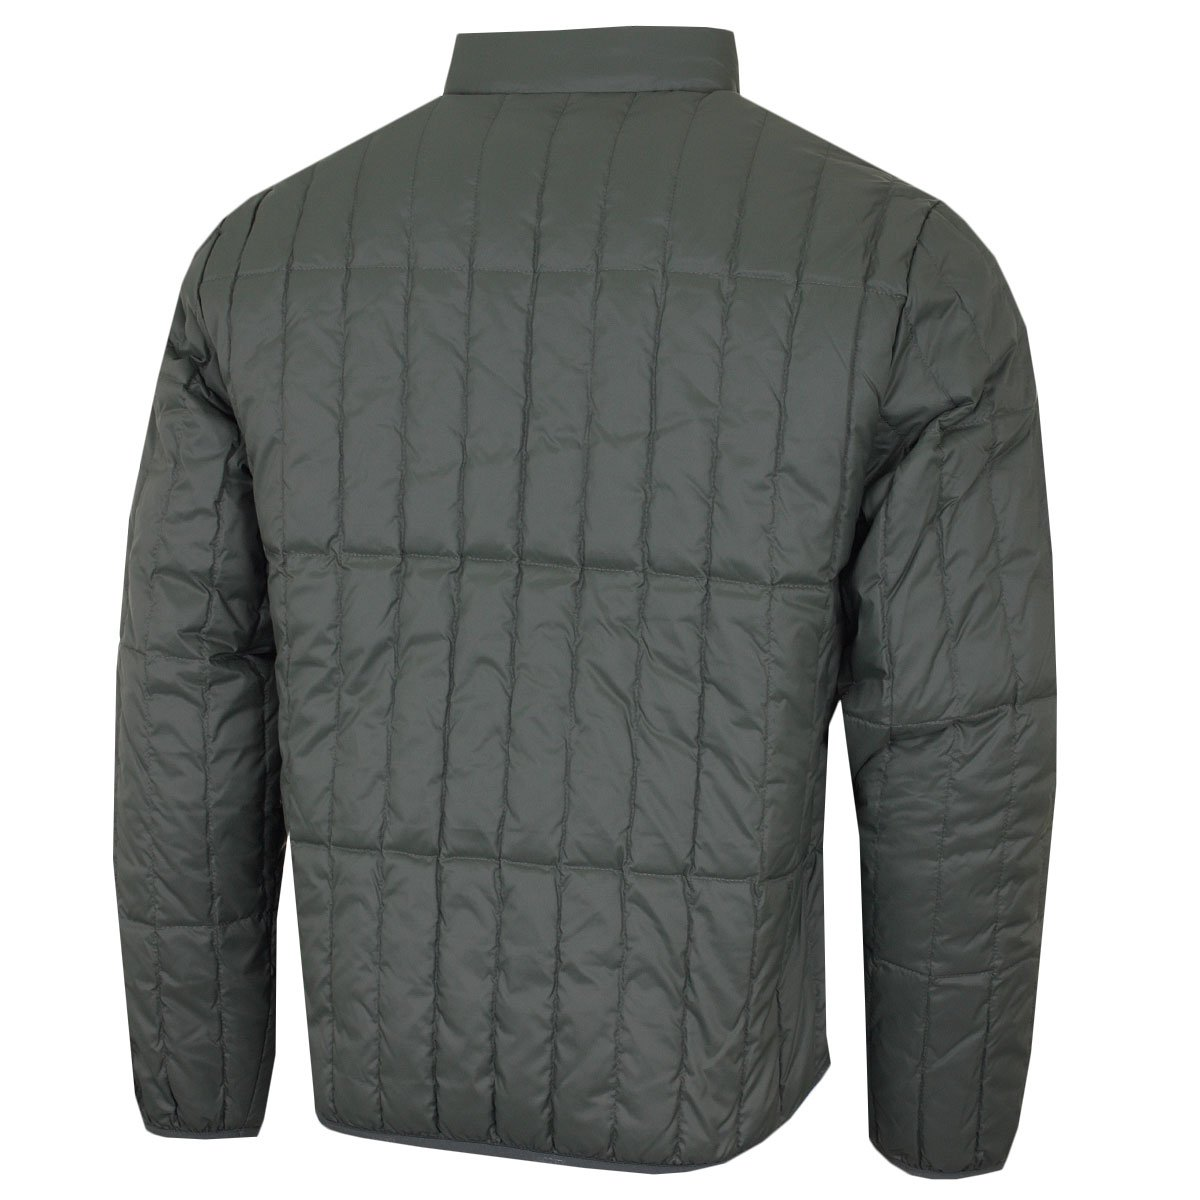 563c325f8 Lacoste Mens Built-in Hood Quilted Jacket  Amazon.co.uk  Clothing